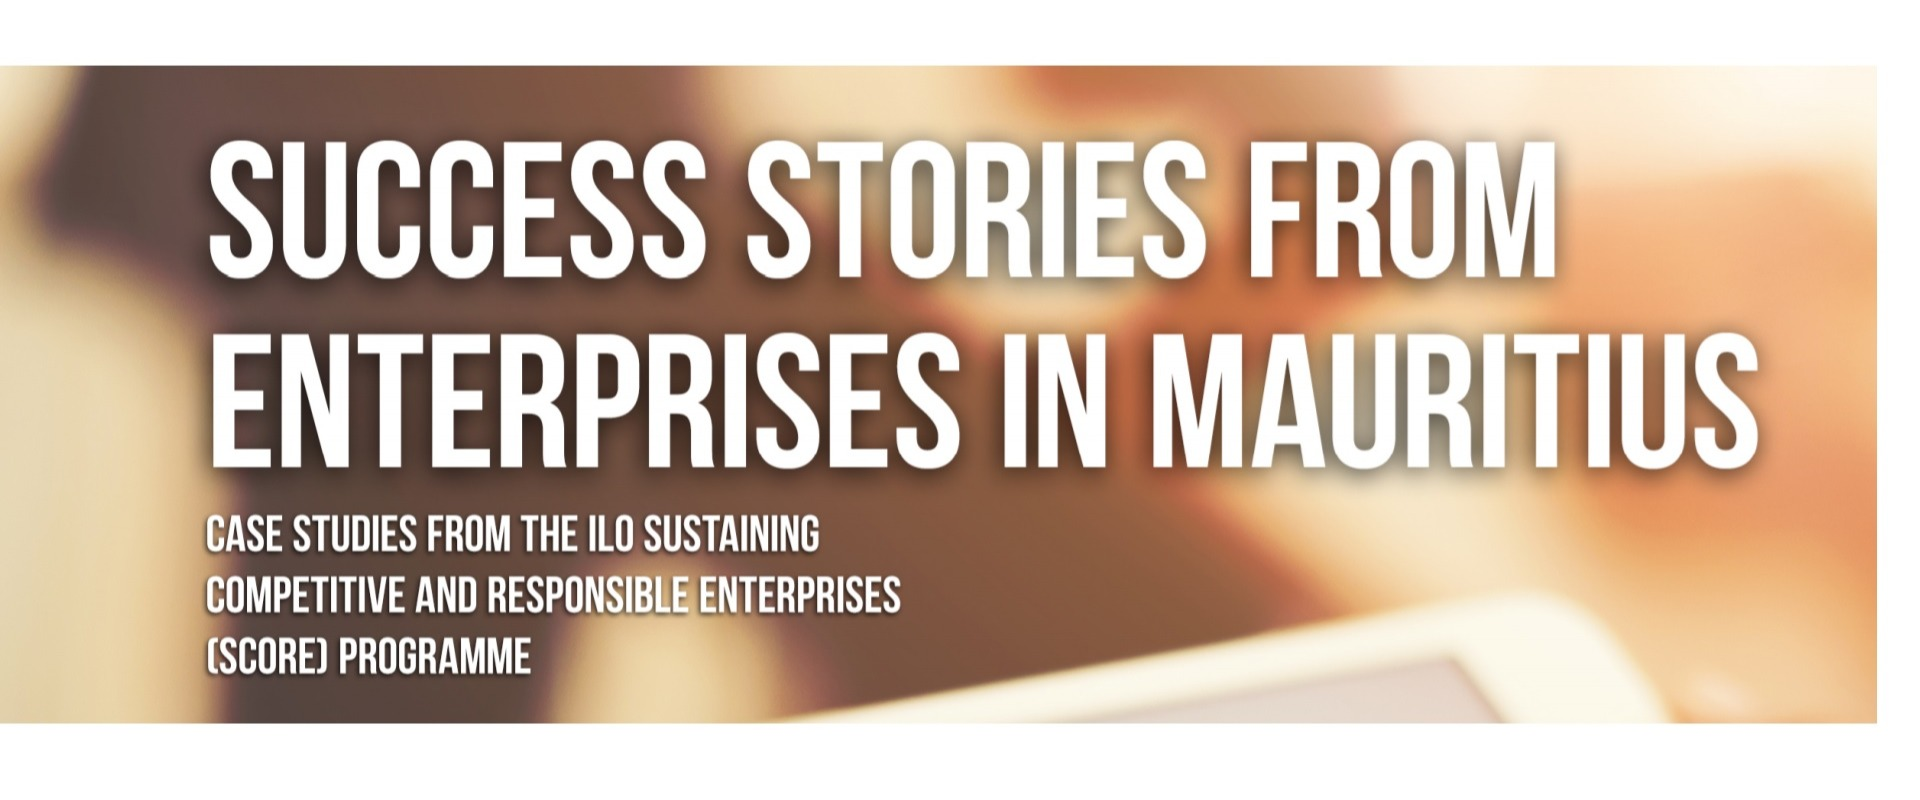 Success stories from enterprises in Mauritius